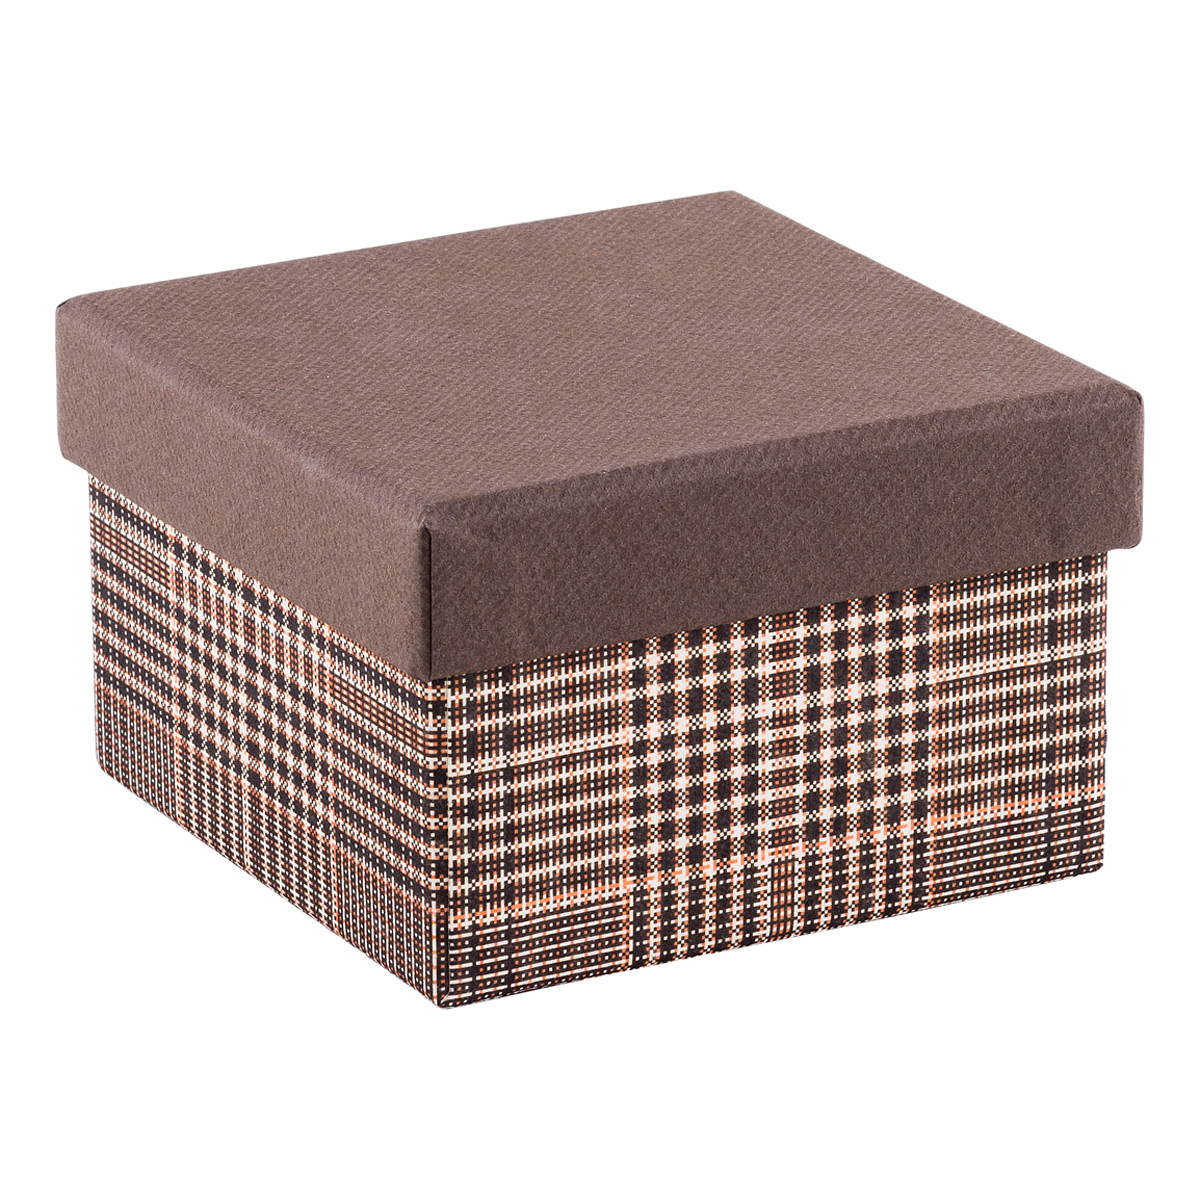 Best Green Gift Boxes Decorative Gift Boxes Gift Boxes With This Month